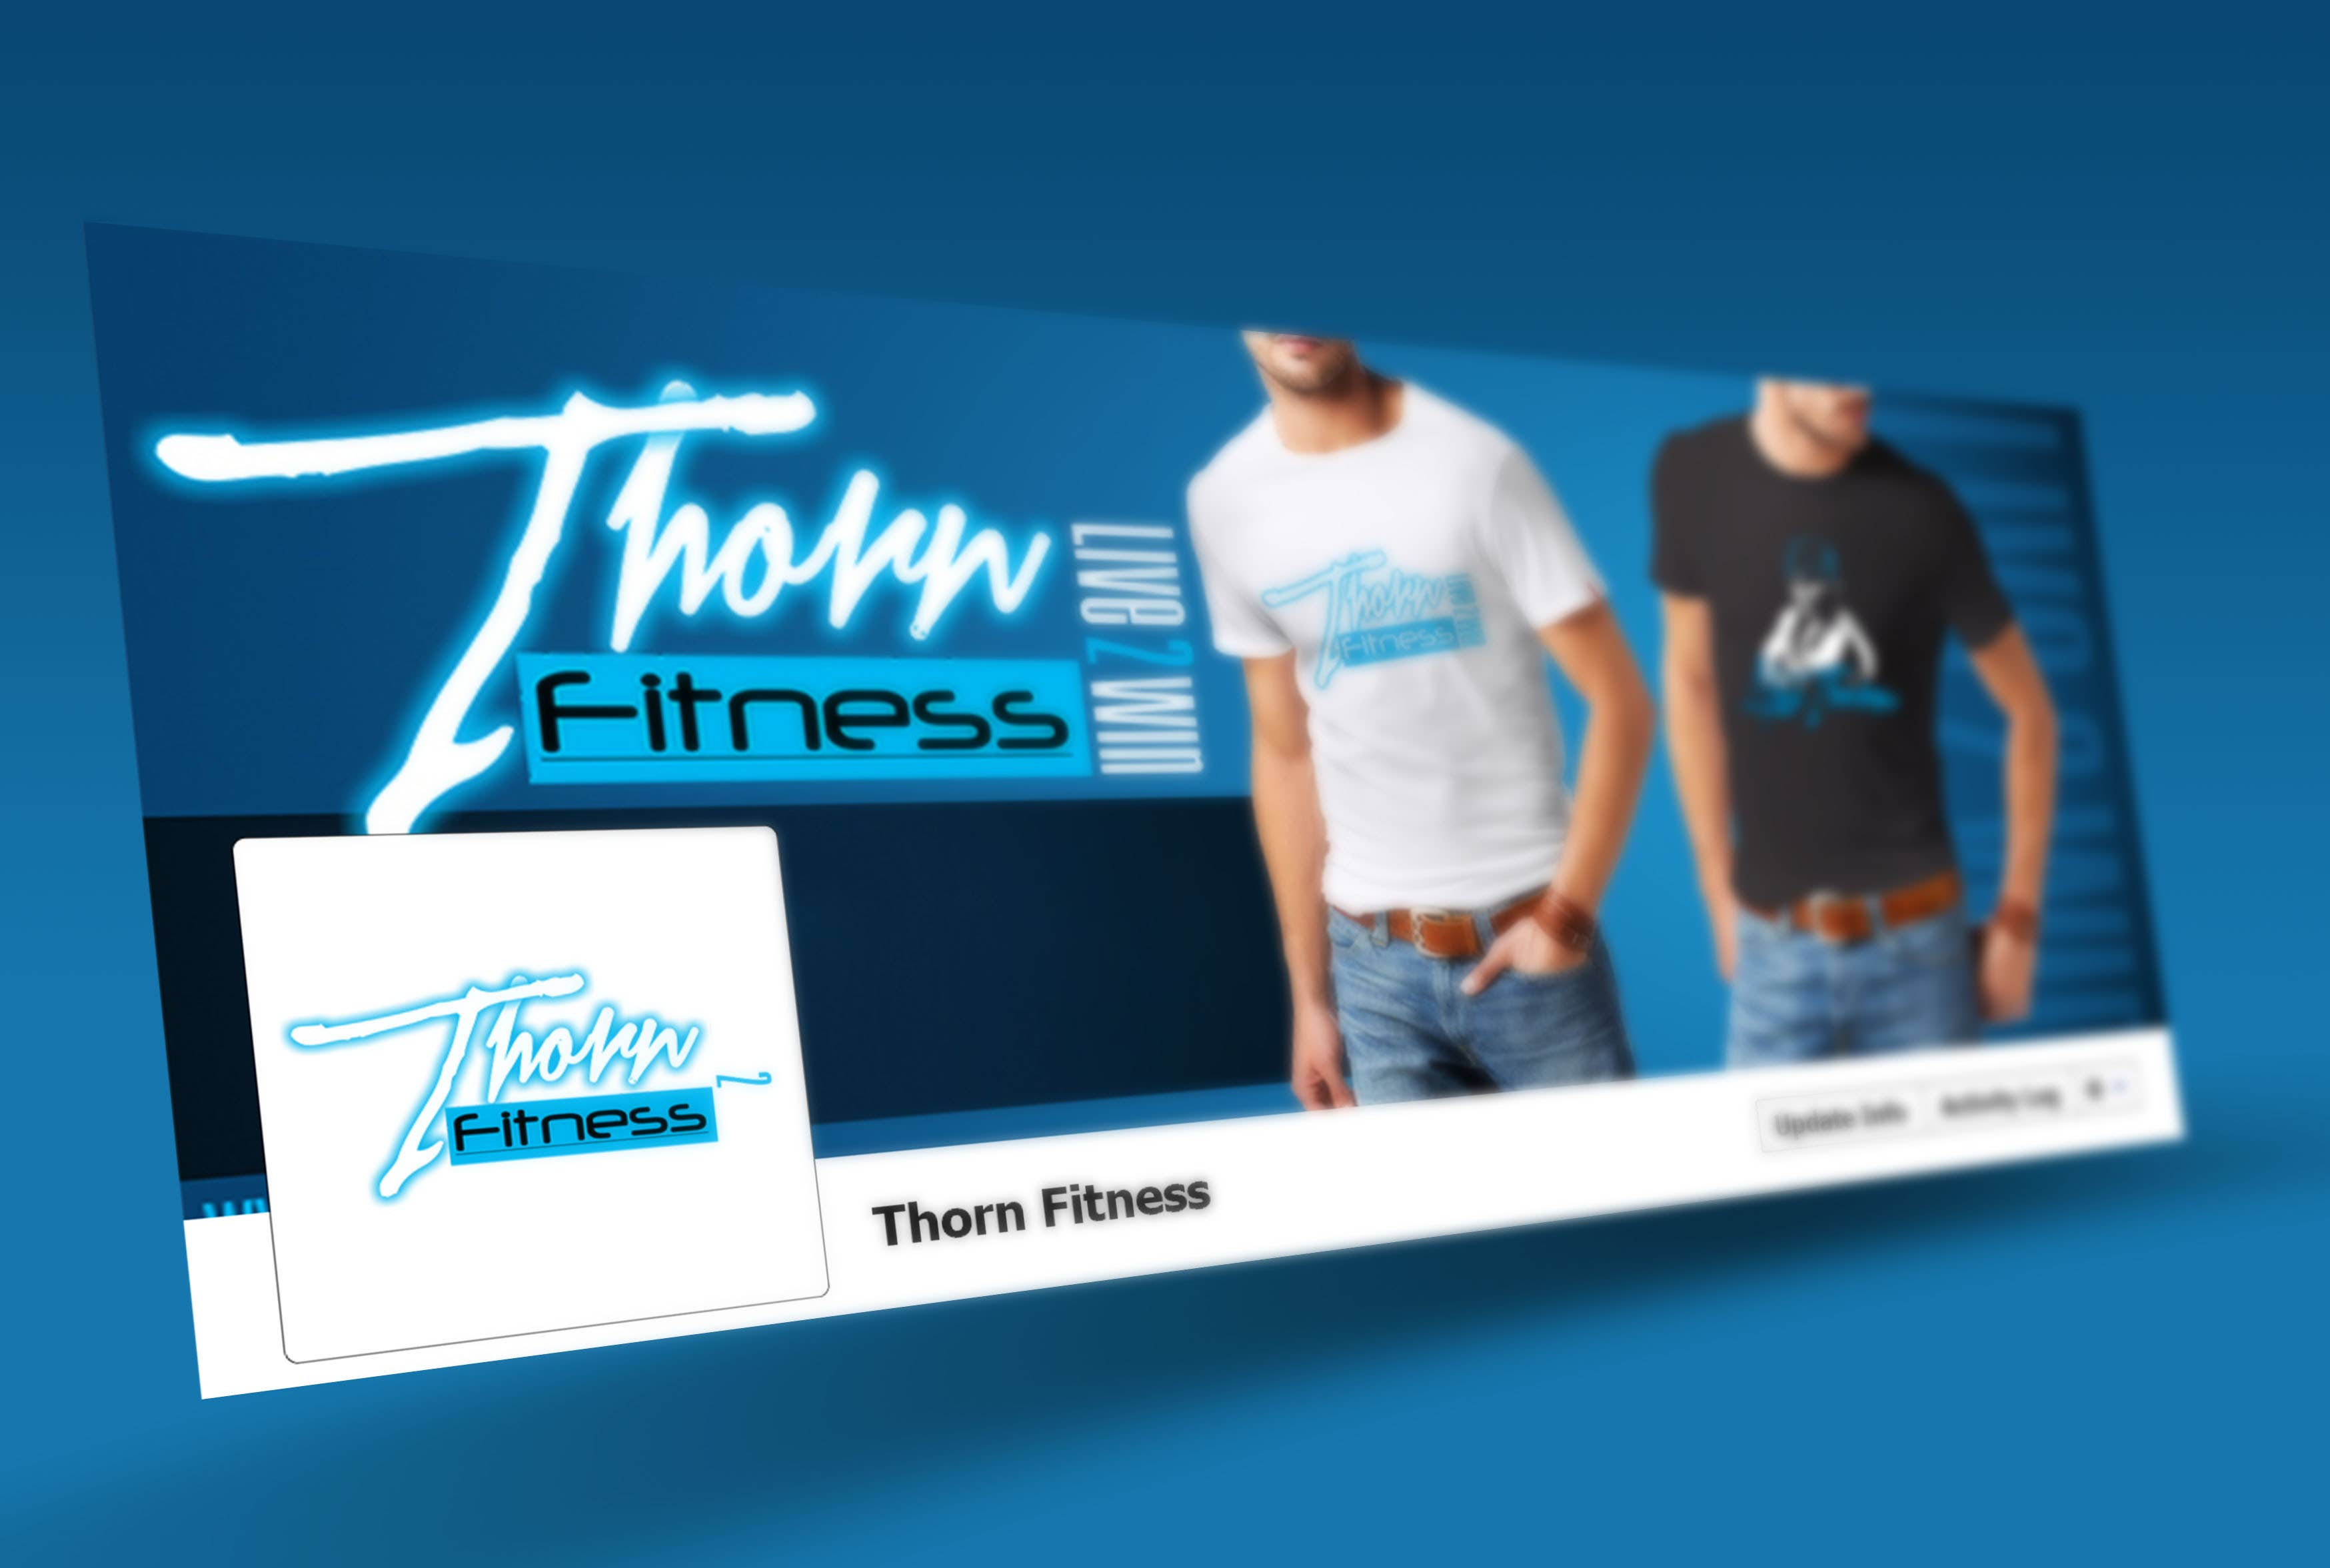 Facebook page cover design.